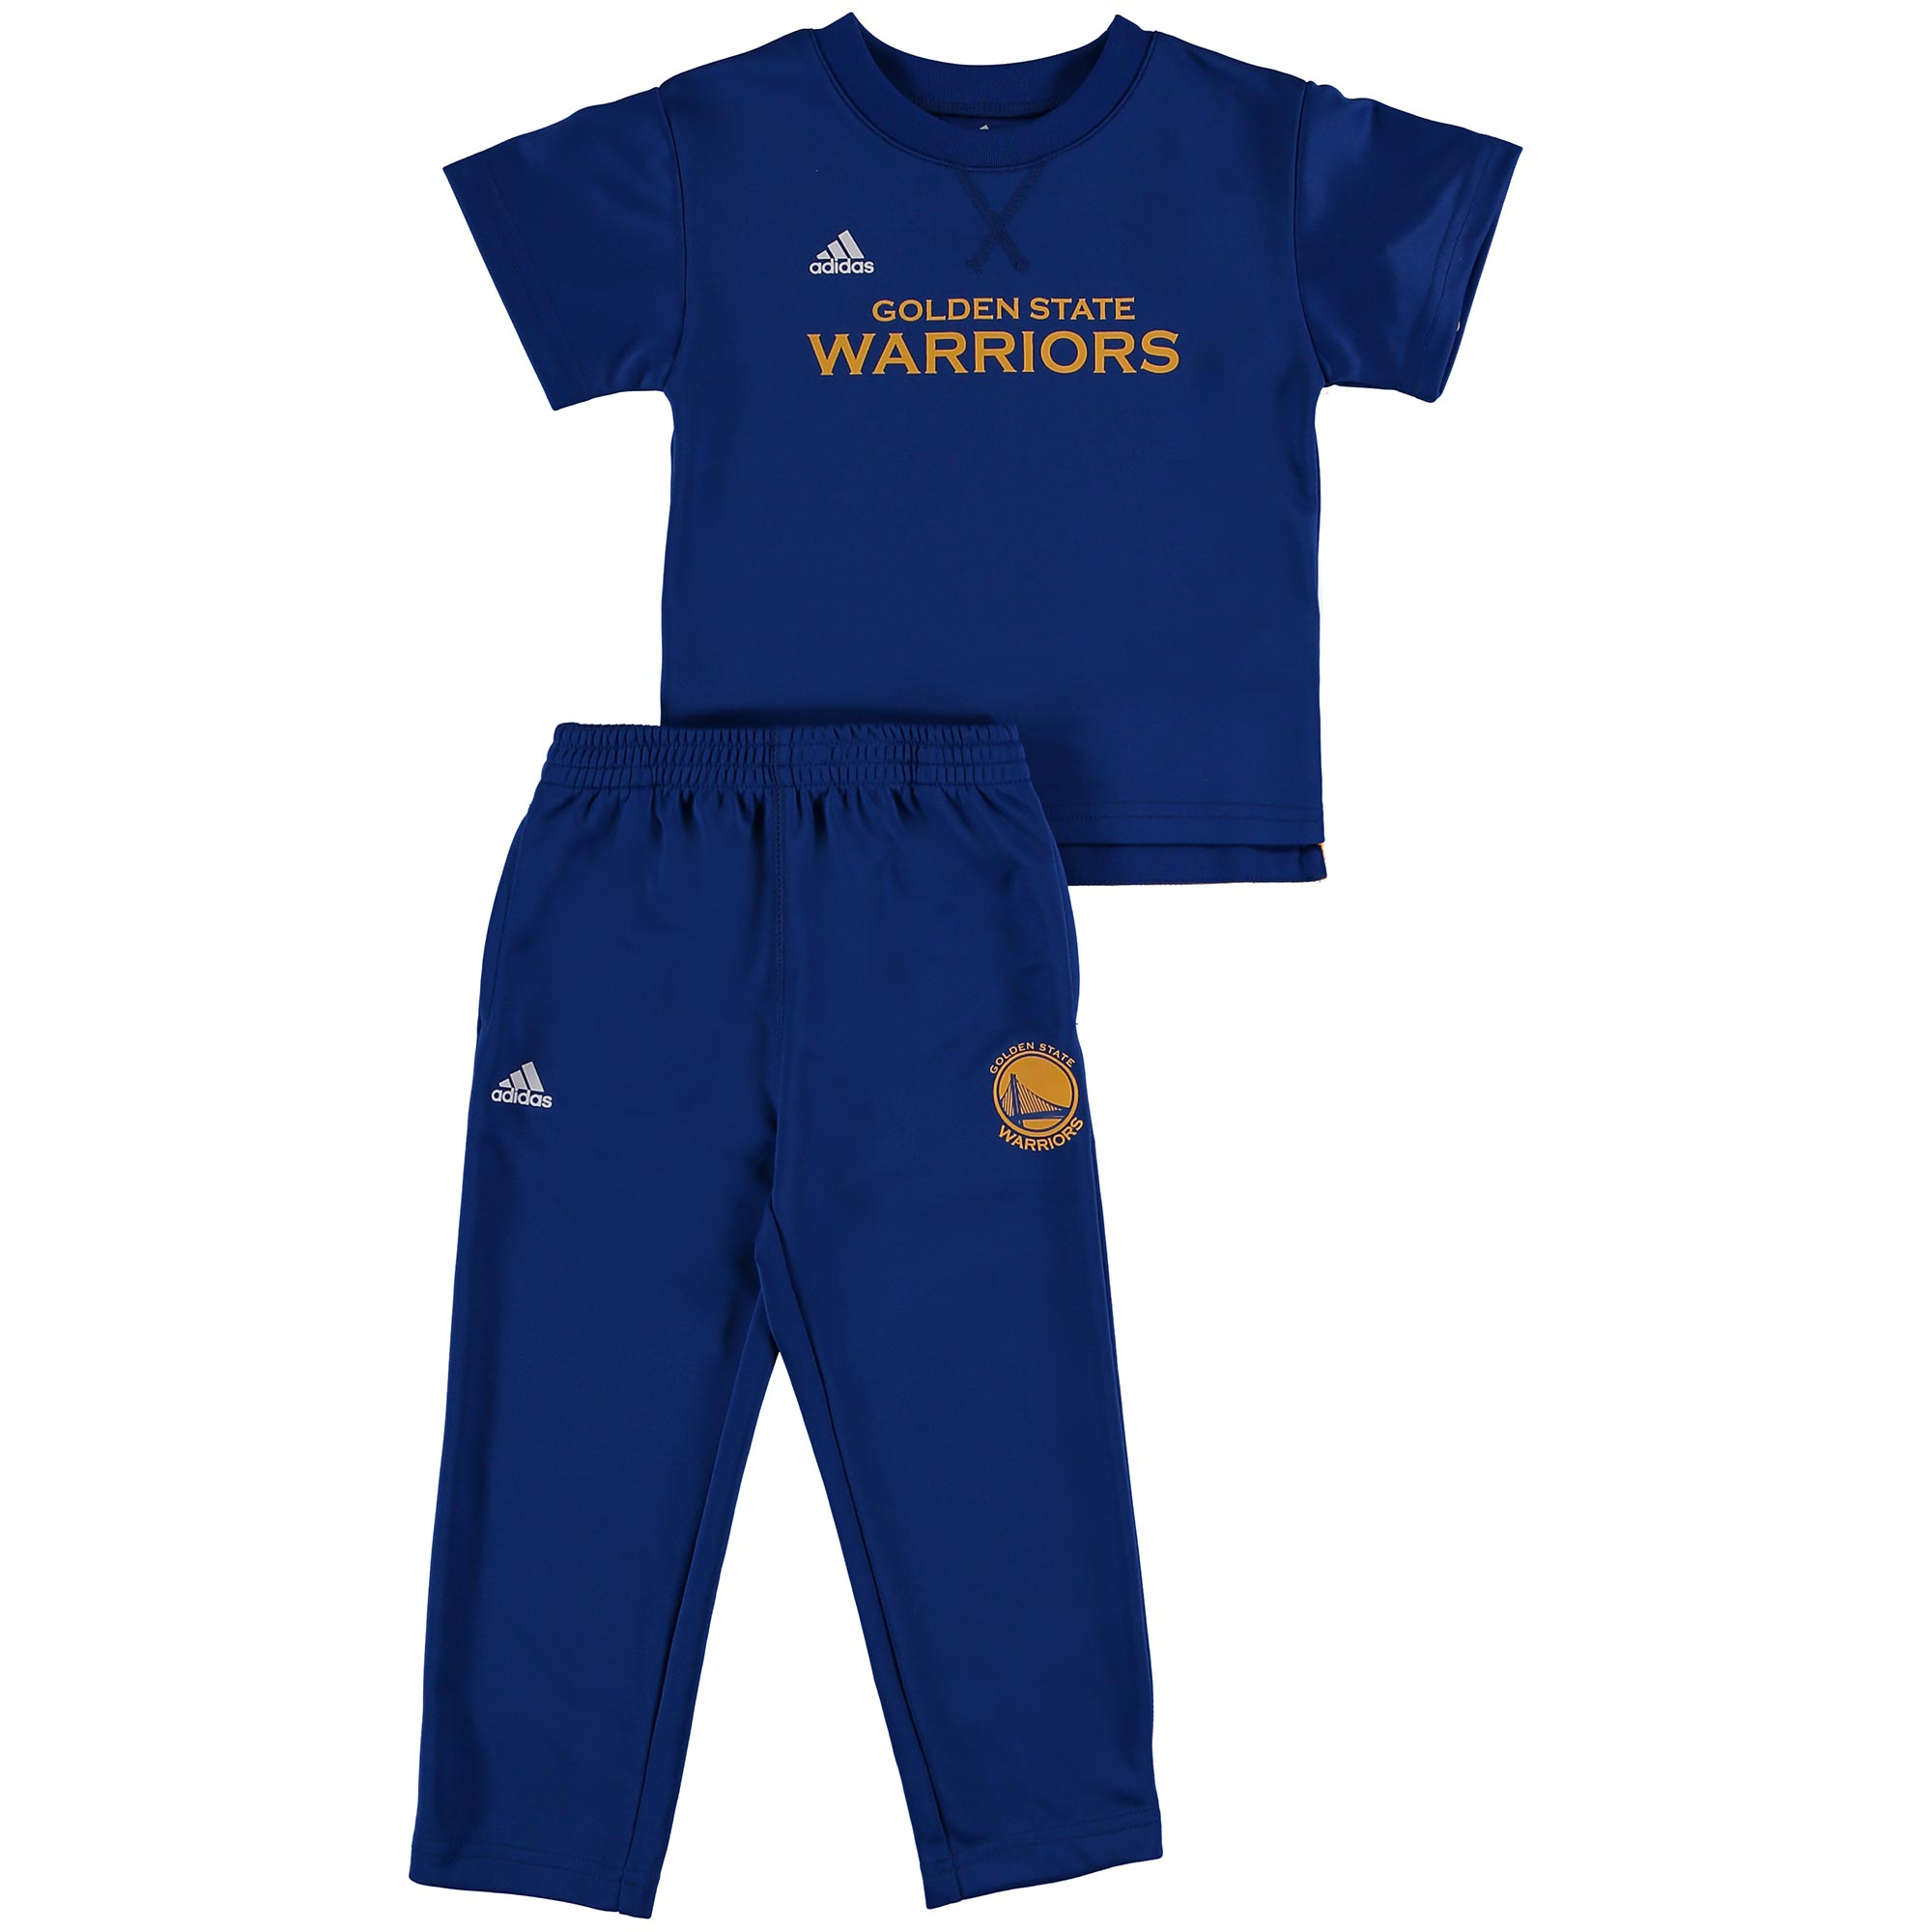 Golden State Warriors Courtside Tracksuit - Toddler